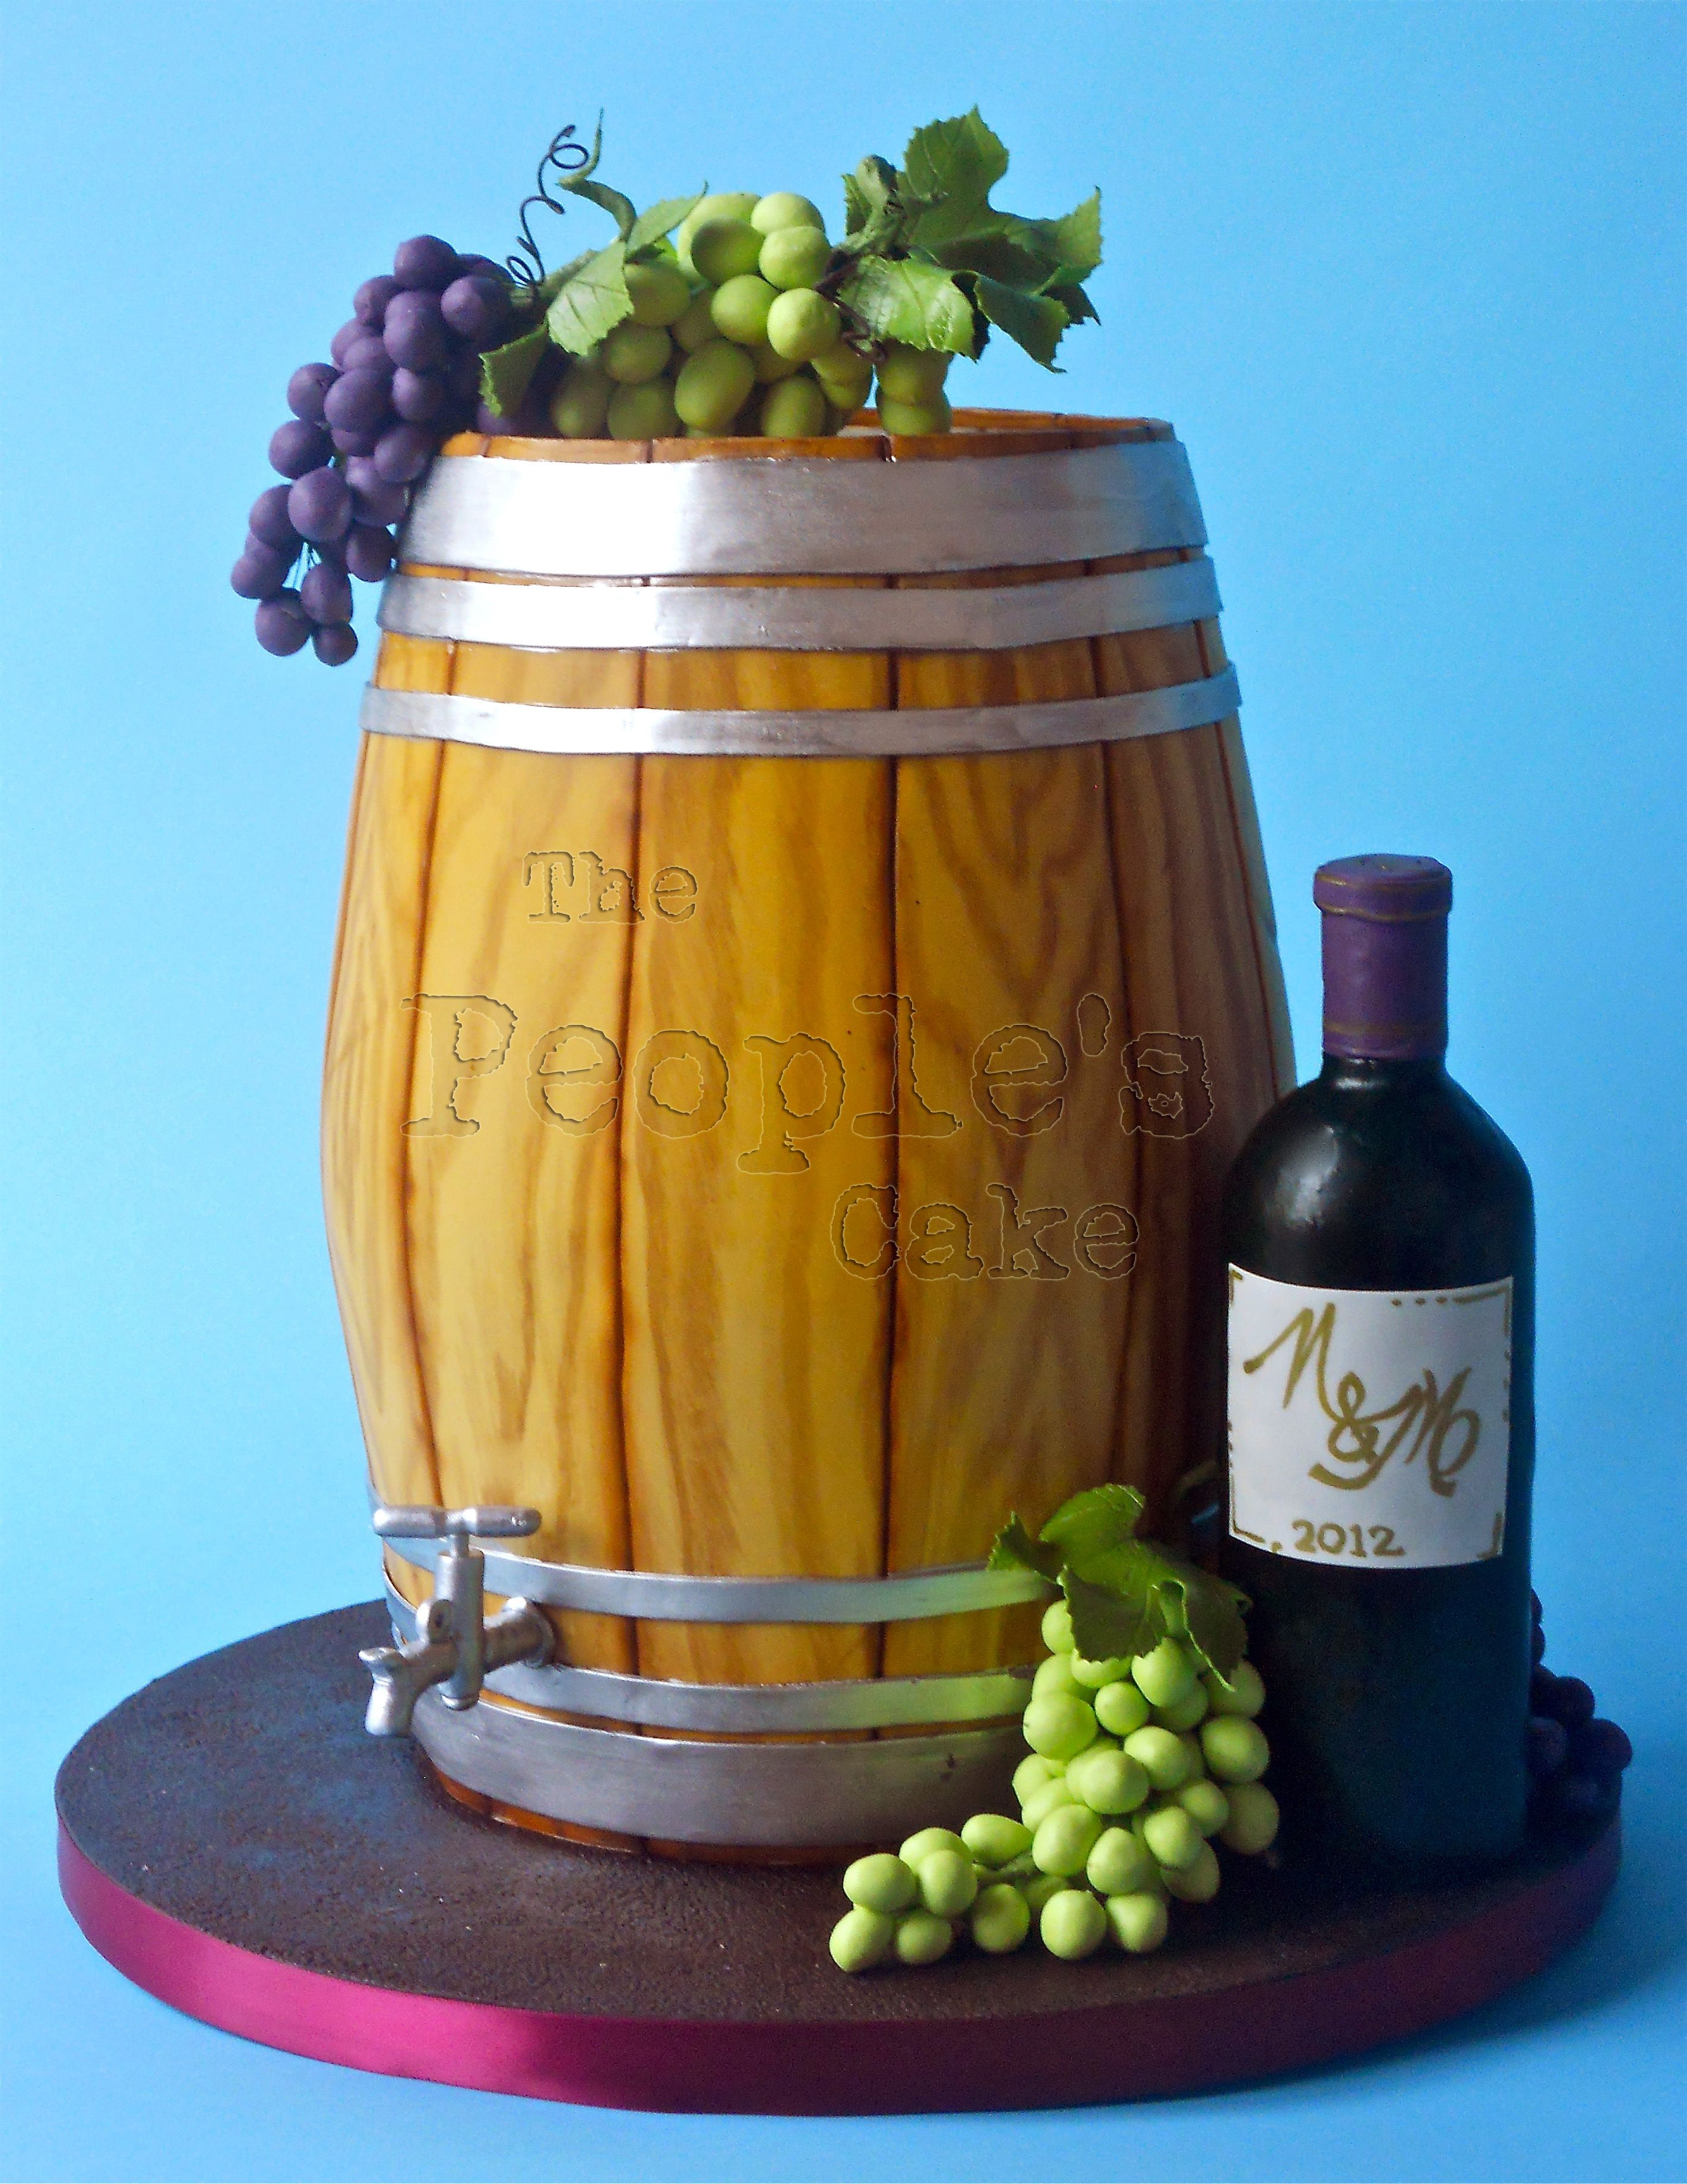 Wine Barrel Cake With Chocolate Grapes And Bottle